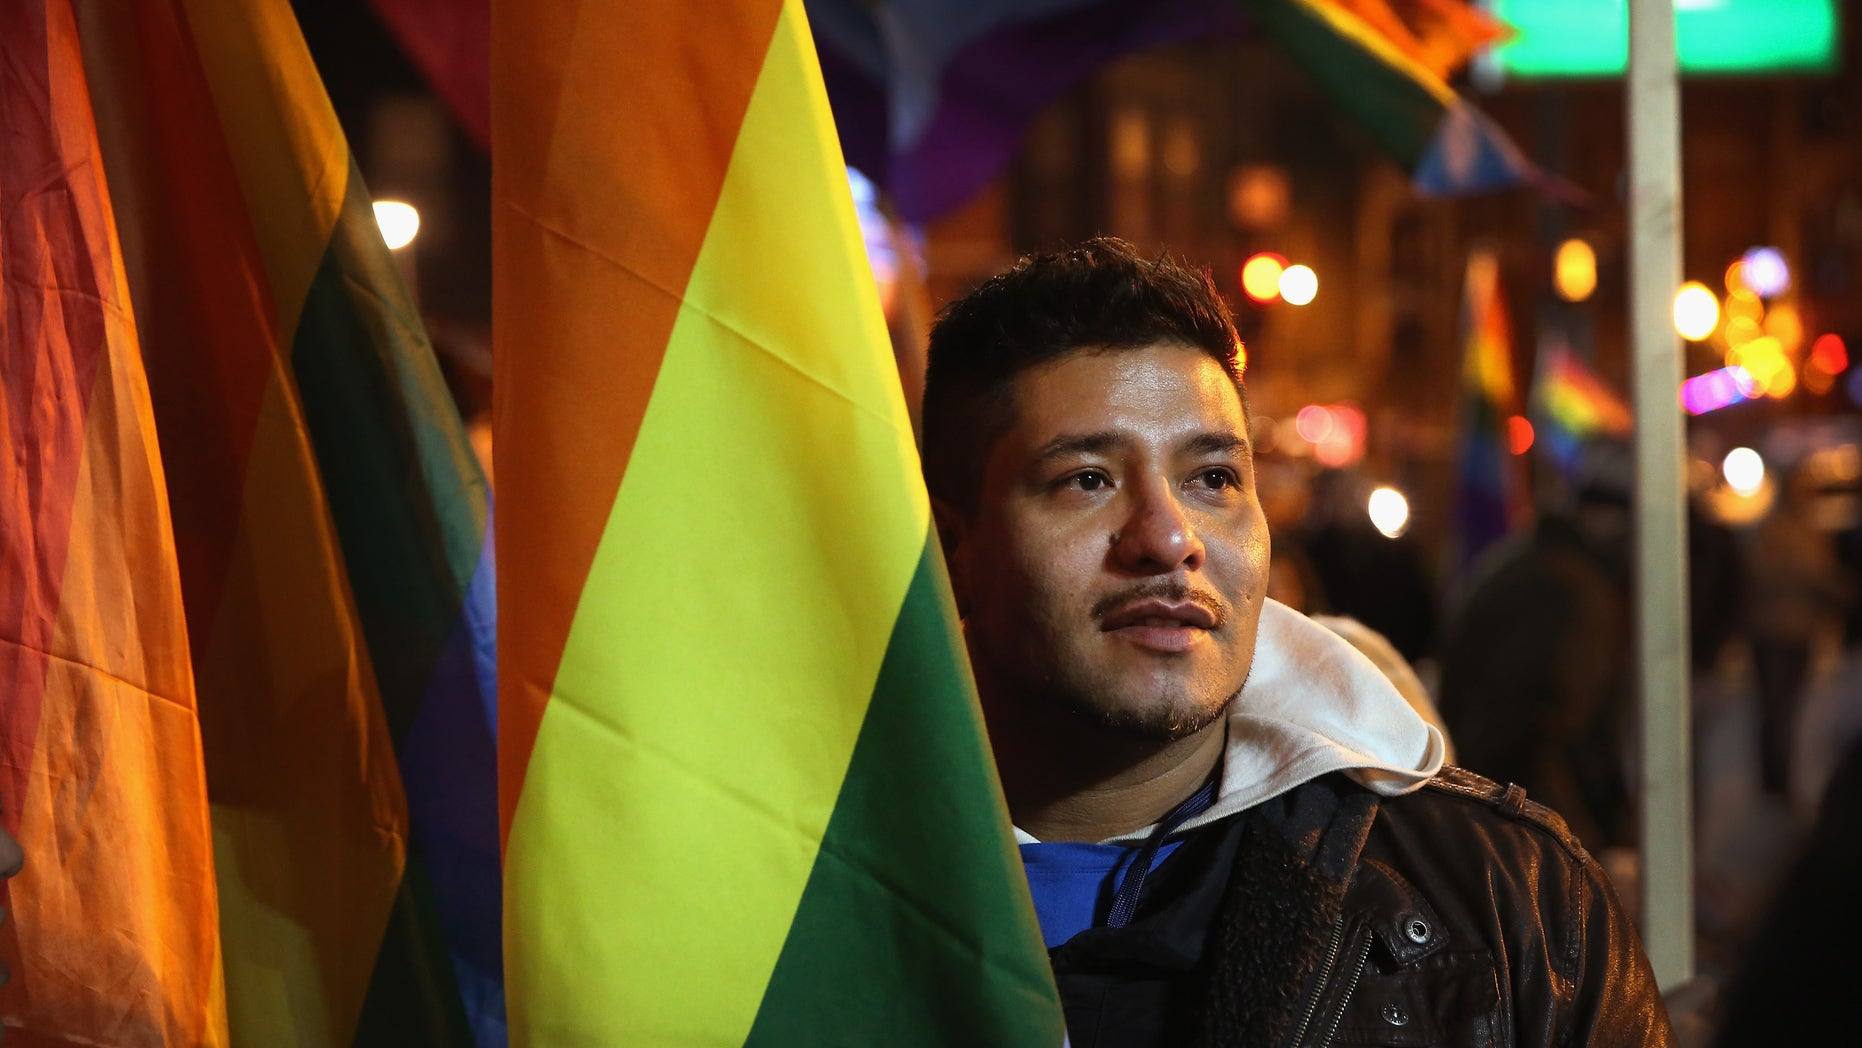 CHICAGO, IL - NOVEMBER 07:  Ismael Enriquez joins other supporters of same-sex marriage at a rally to celebrate Illinois General Assembly's passing of a gay marriage bill on November 7, 2013 in Chicago, Illinois. The governor is expected to sign the bill on November 20, making Illinois the 15th state to legalize same-sex unions.  (Photo by Scott Olson/Getty Images)